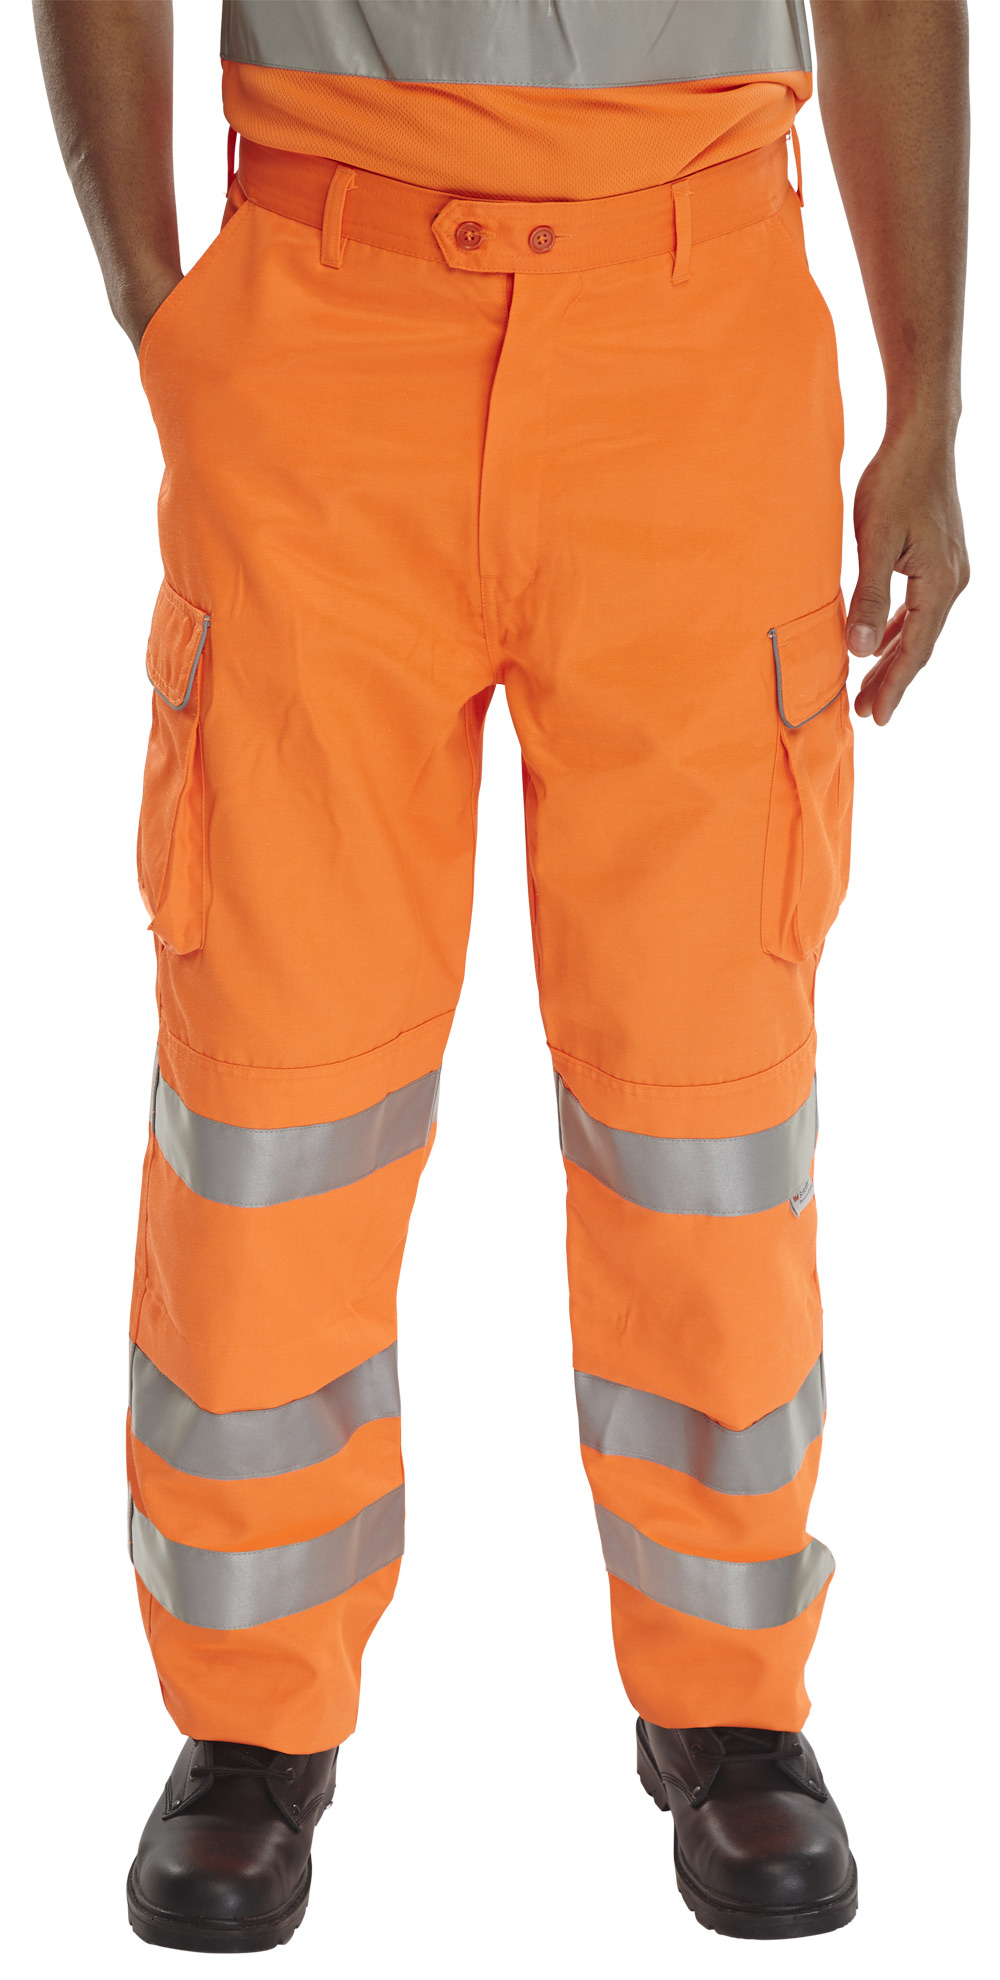 RAILSPEC TROUSERS - RST